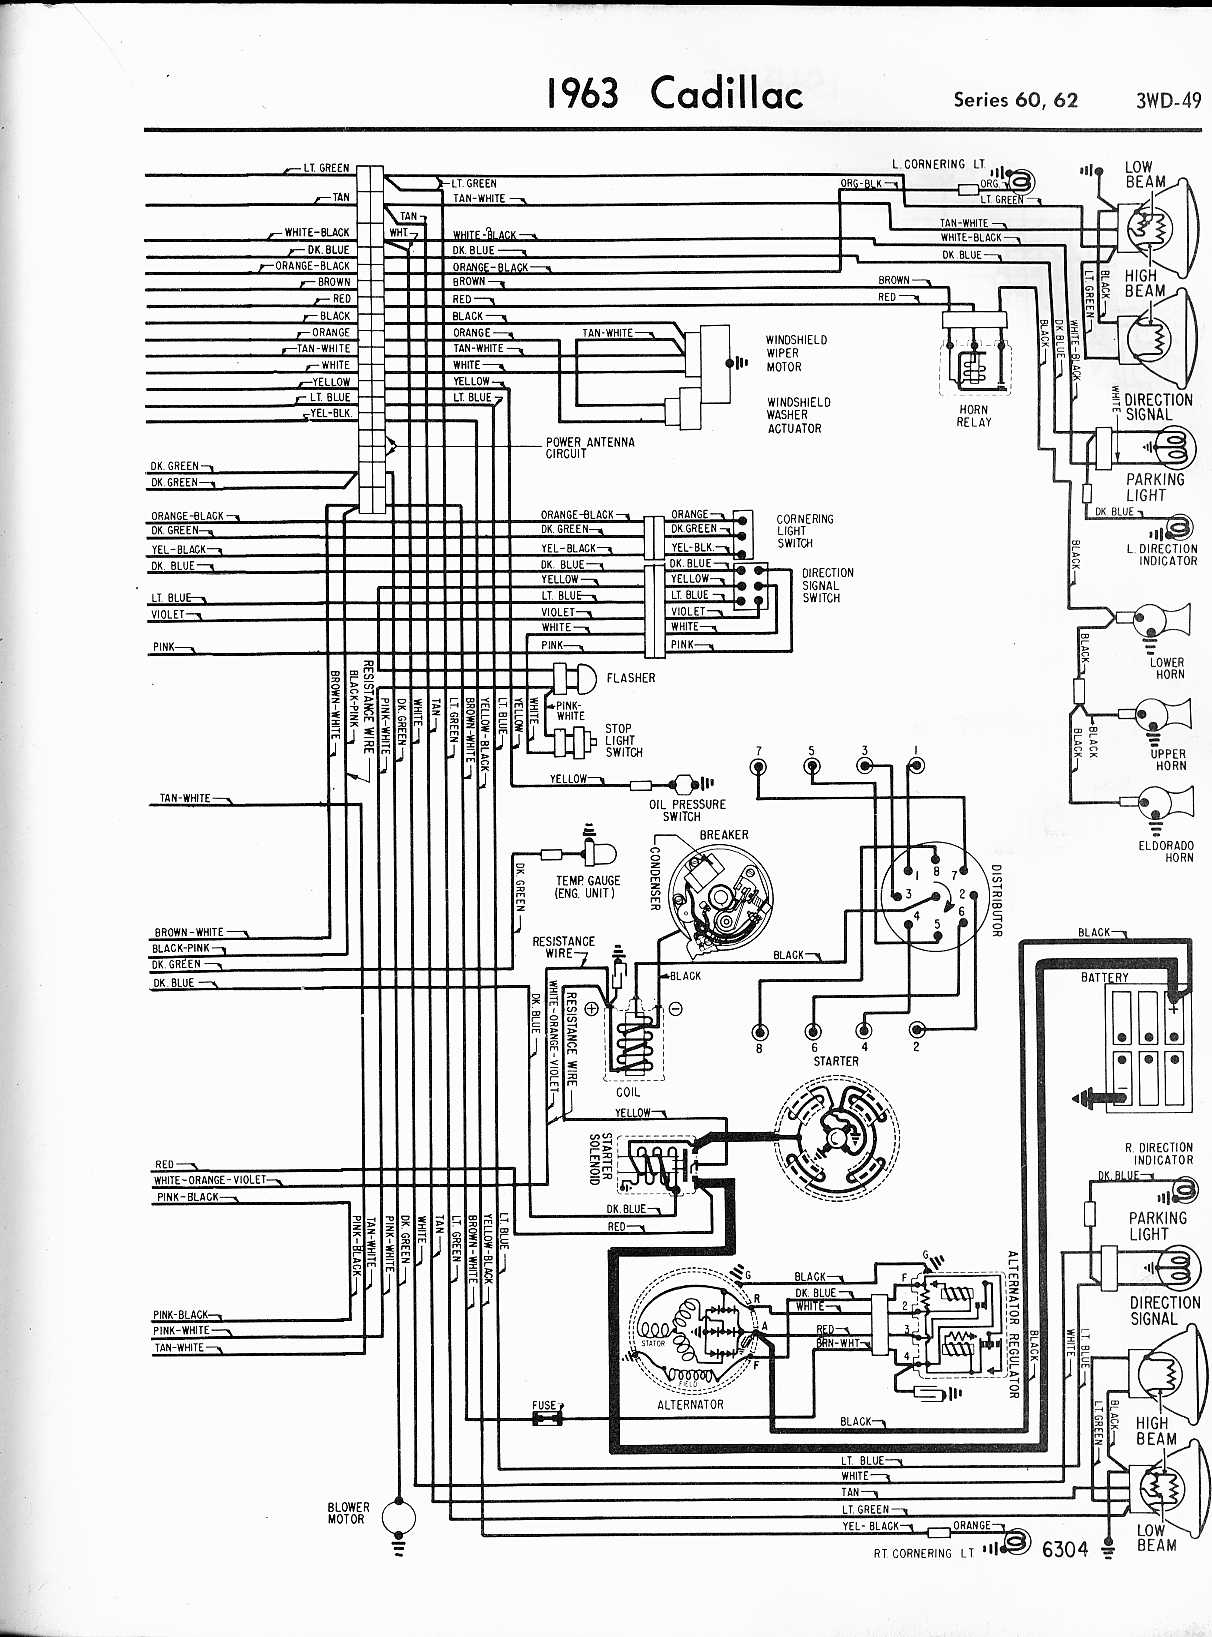 cadillac wiring diagrams: 1957-1965 cadillac 1963 windows wiring diagram all about diagrams